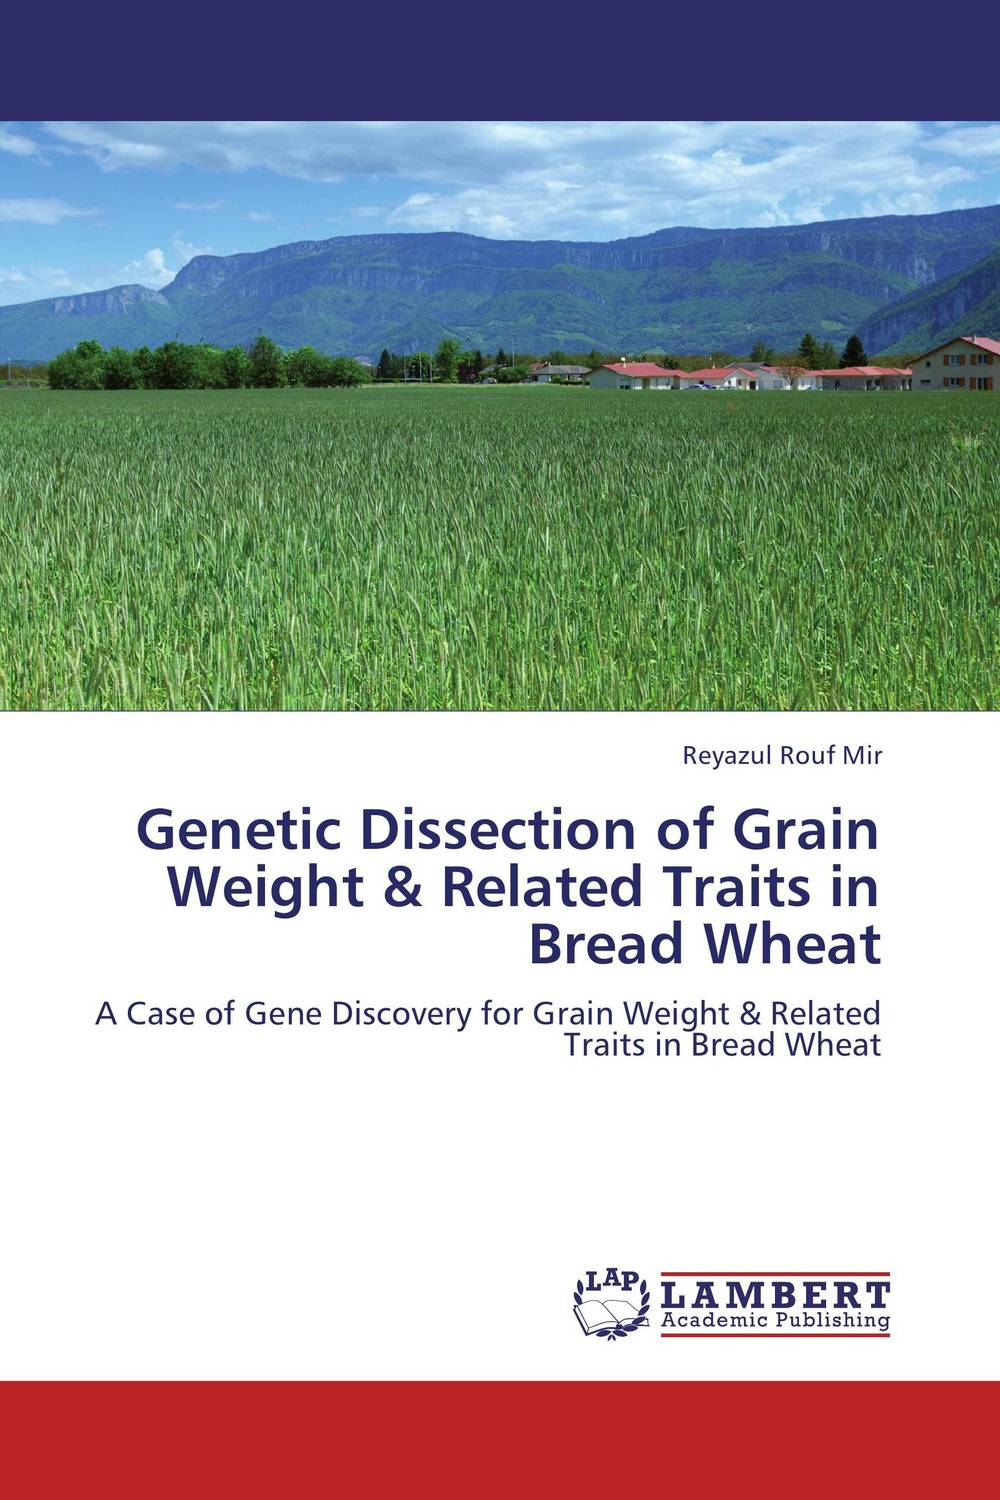 Genetic Dissection of Grain Weight & Related Traits in Bread Wheat mir abid hussain dr vijeshwar verma and dr ghulam nabi qazi population genetic structure of rhizomatous picrorhiza kurrooa royle